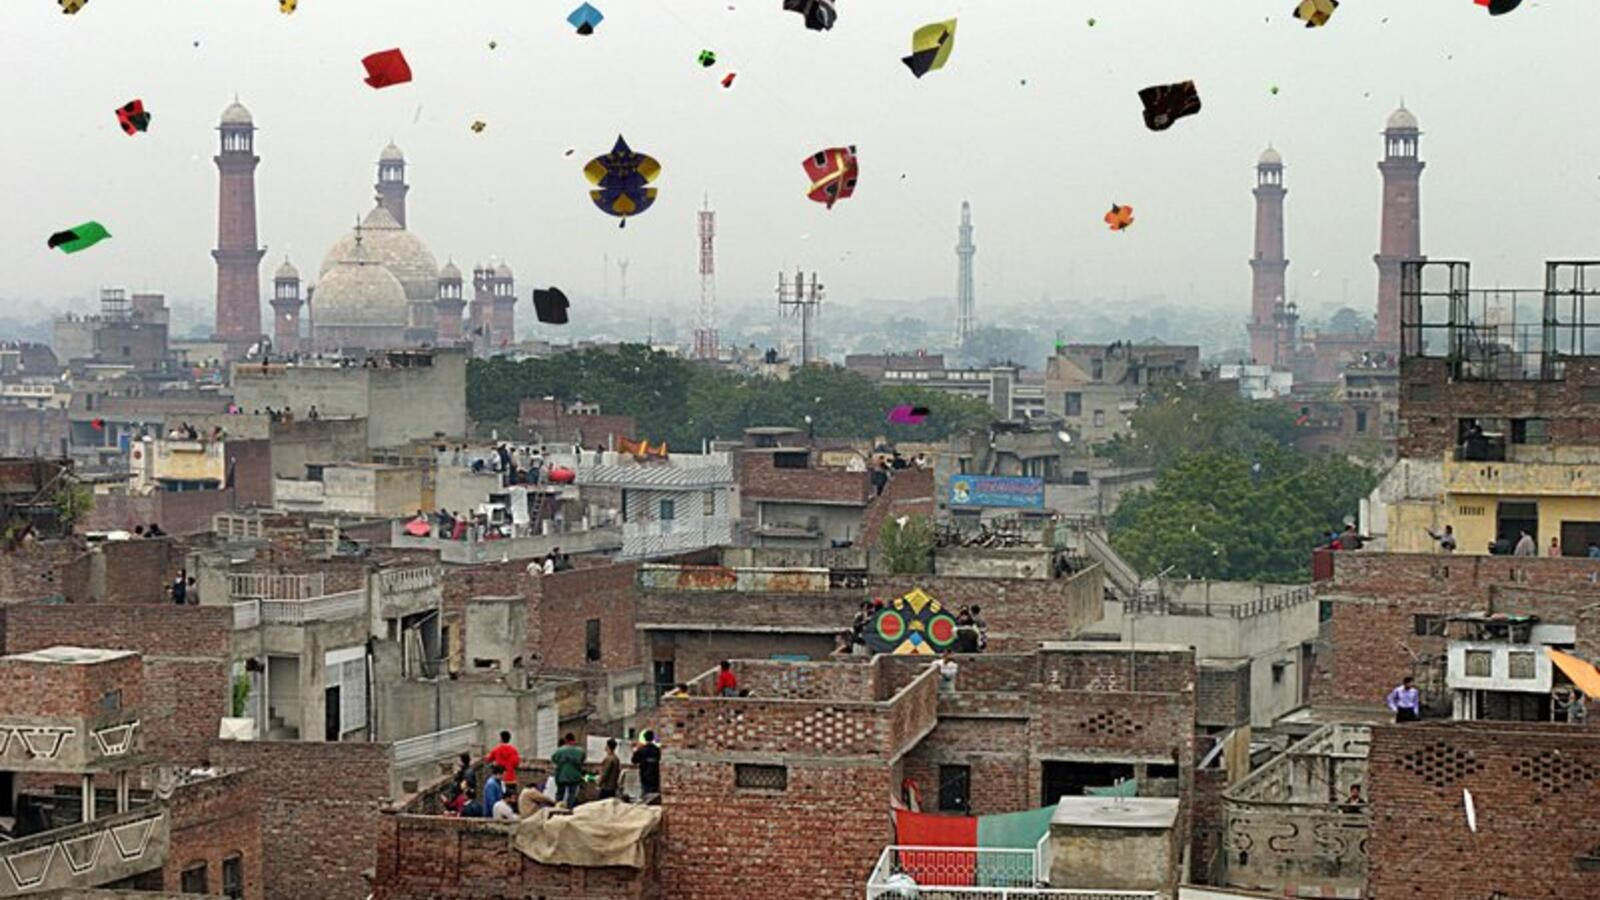 Basant (kite flying festival) in Lahore (Twitter)